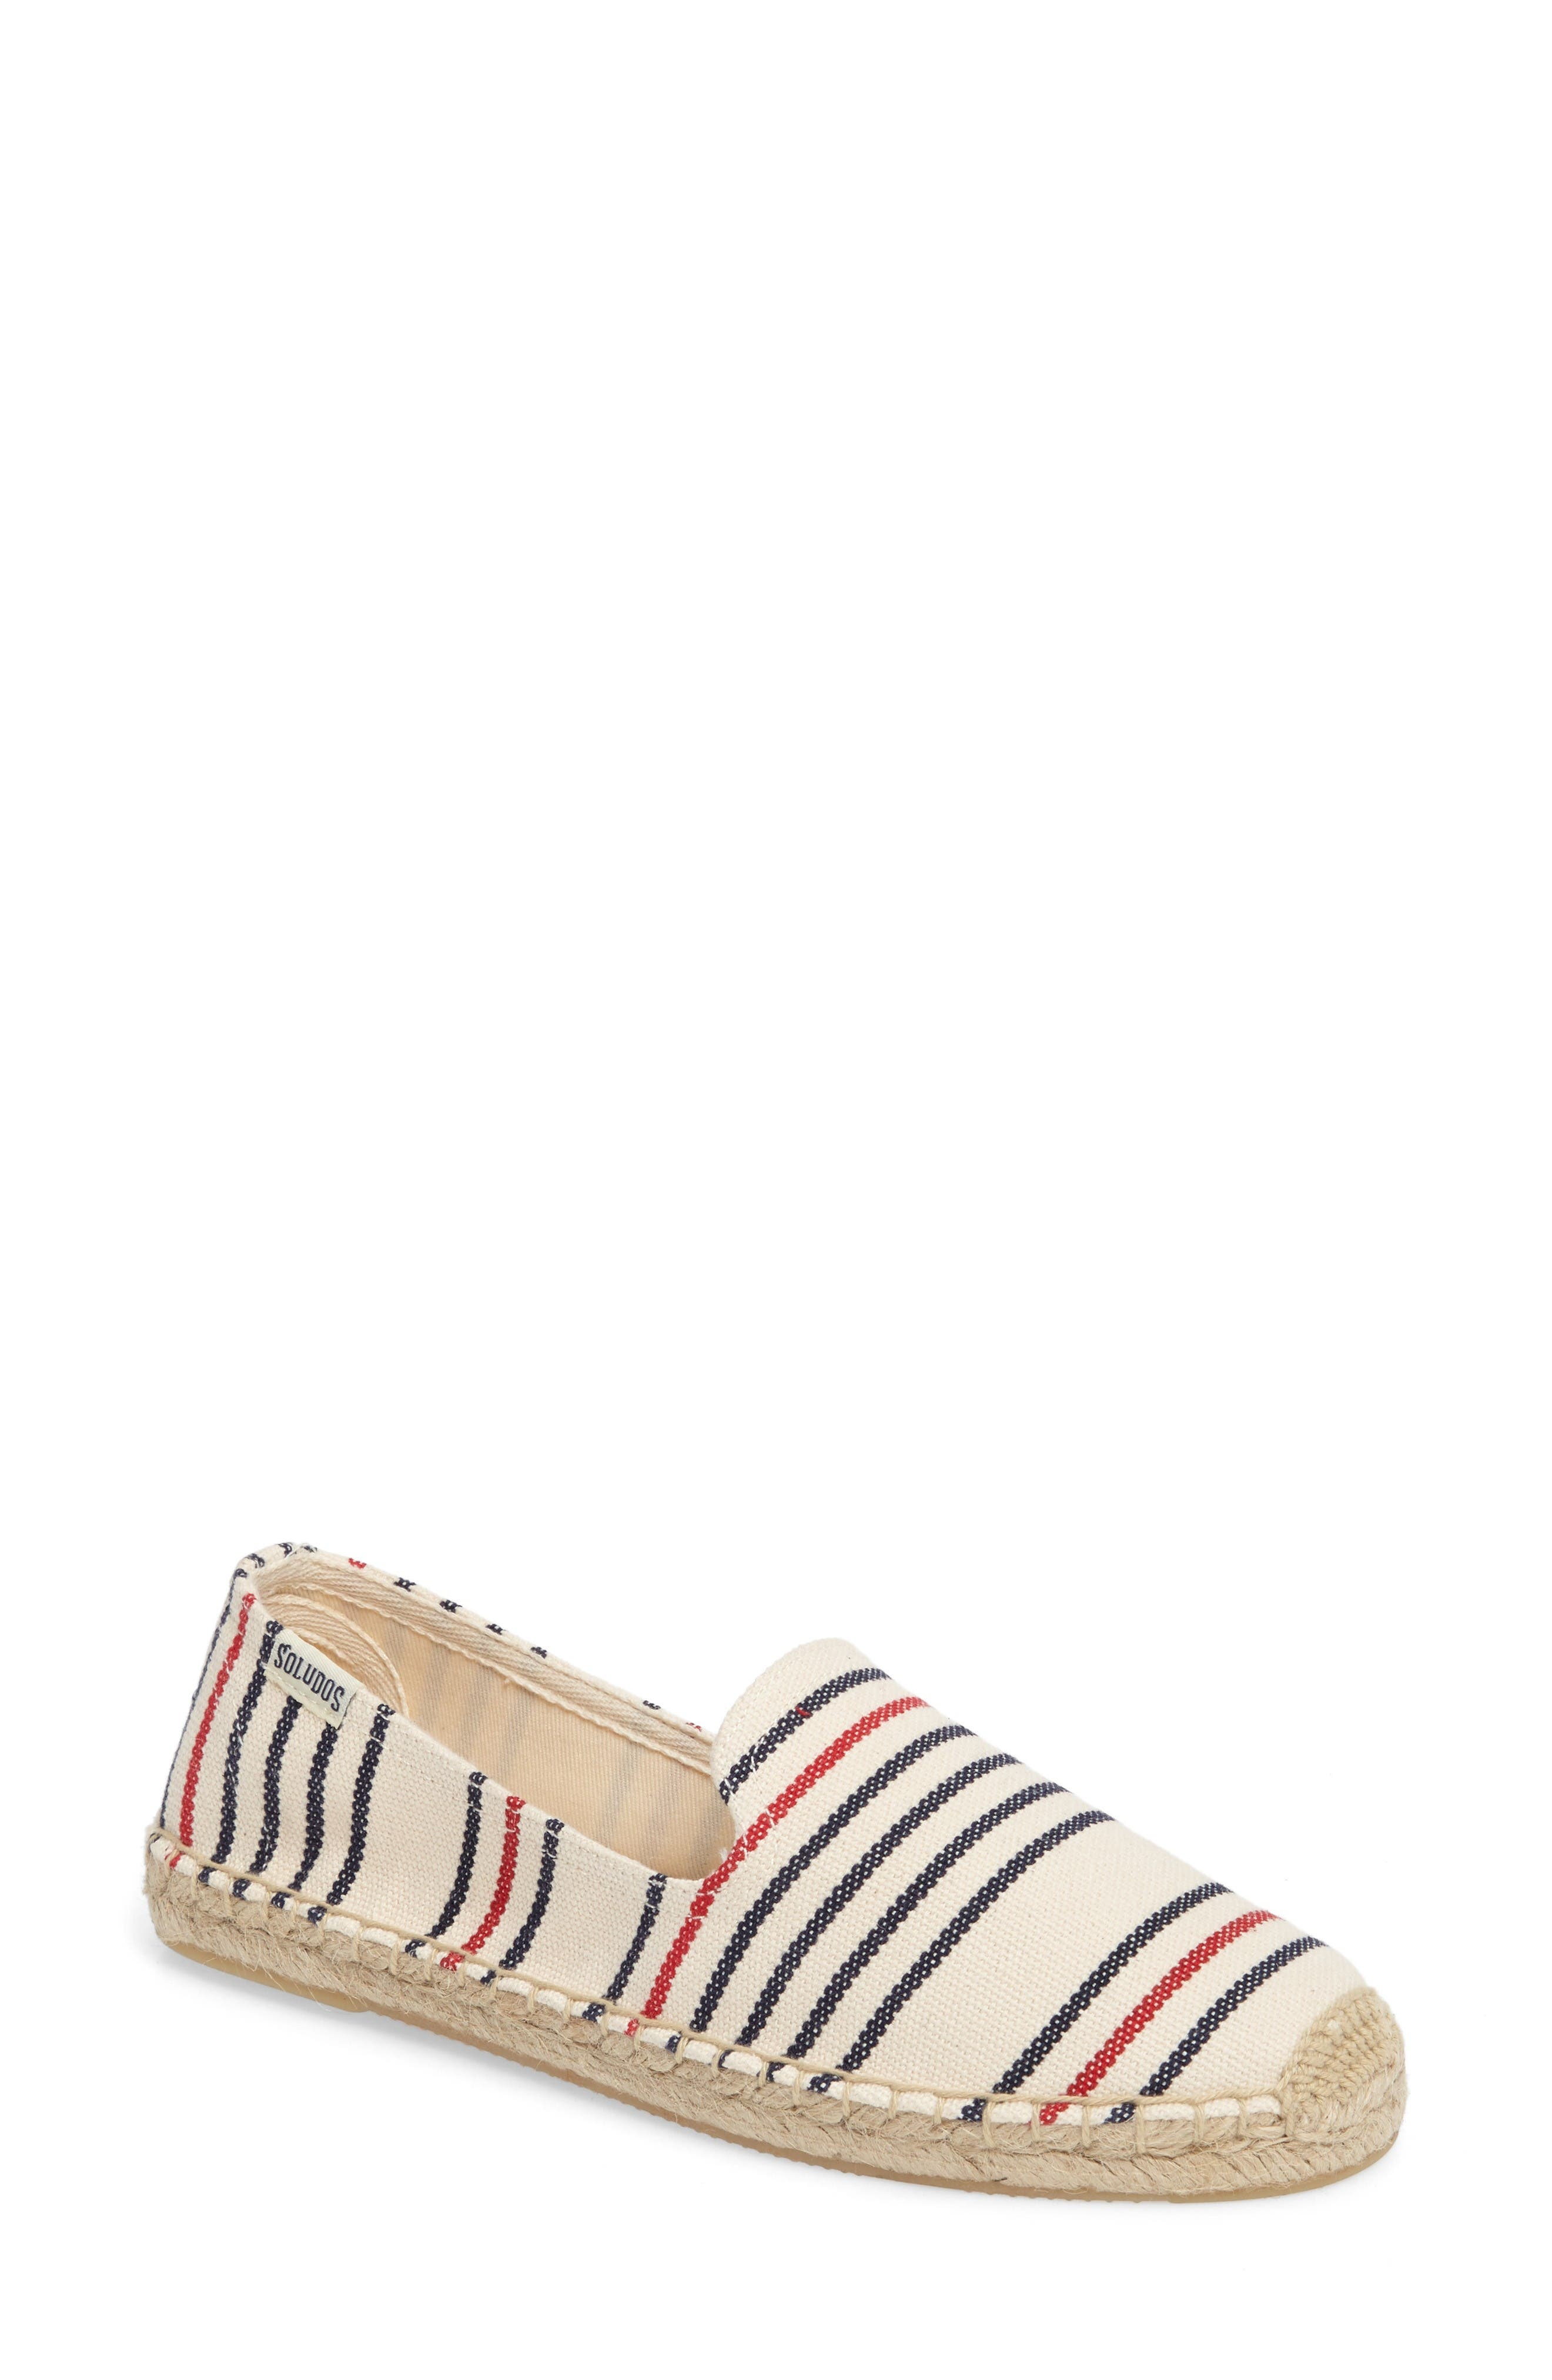 Alternate Image 1 Selected - Soludos Stripe Espadrille Loafer (Women)